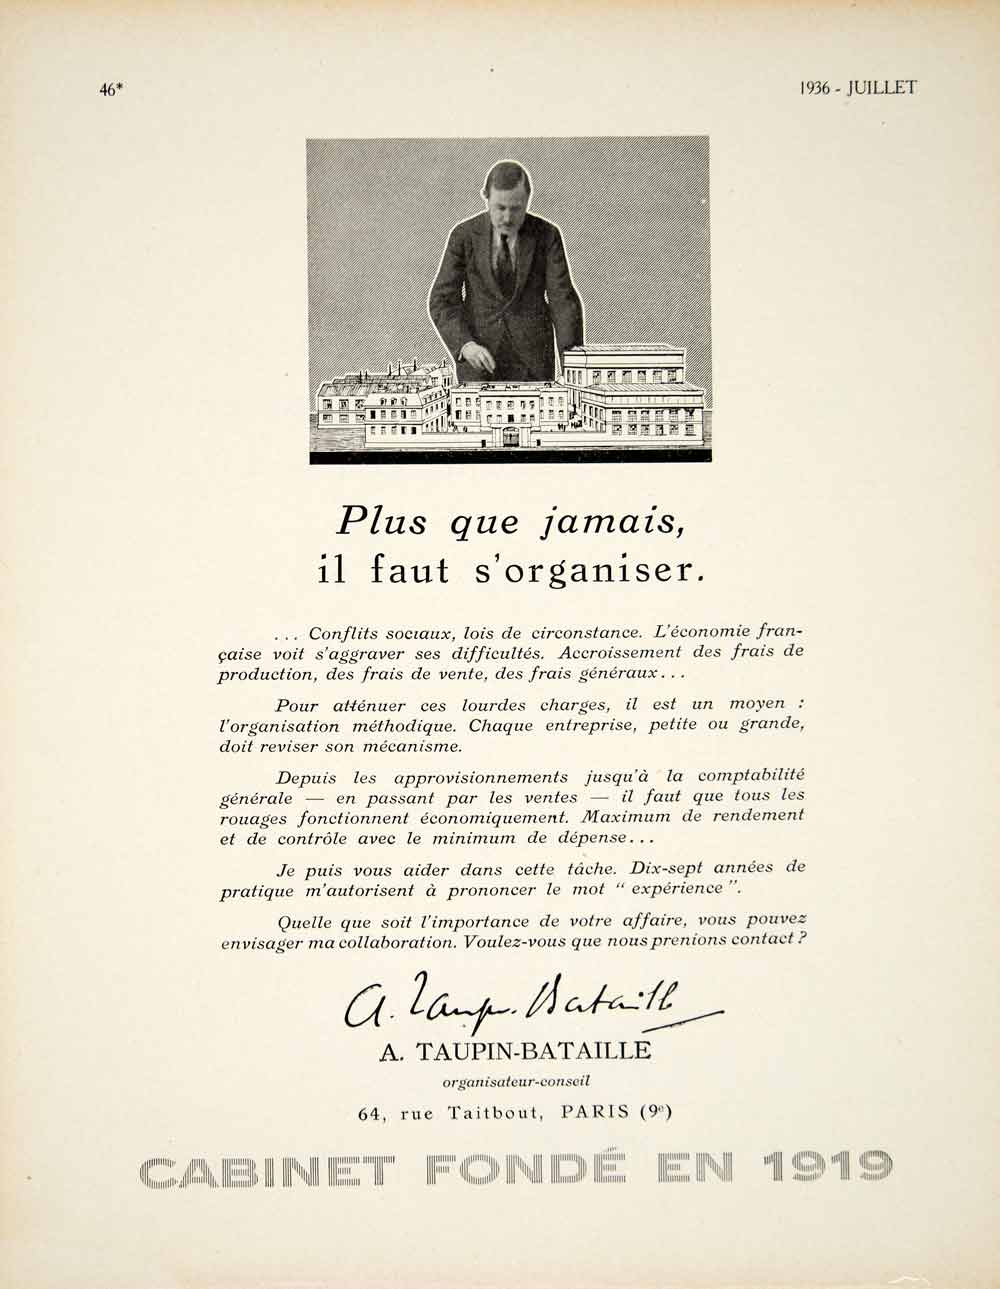 1936 Ad Vintage French A Taupin-Bataille Marketing Advertising Agency Paris VEN9